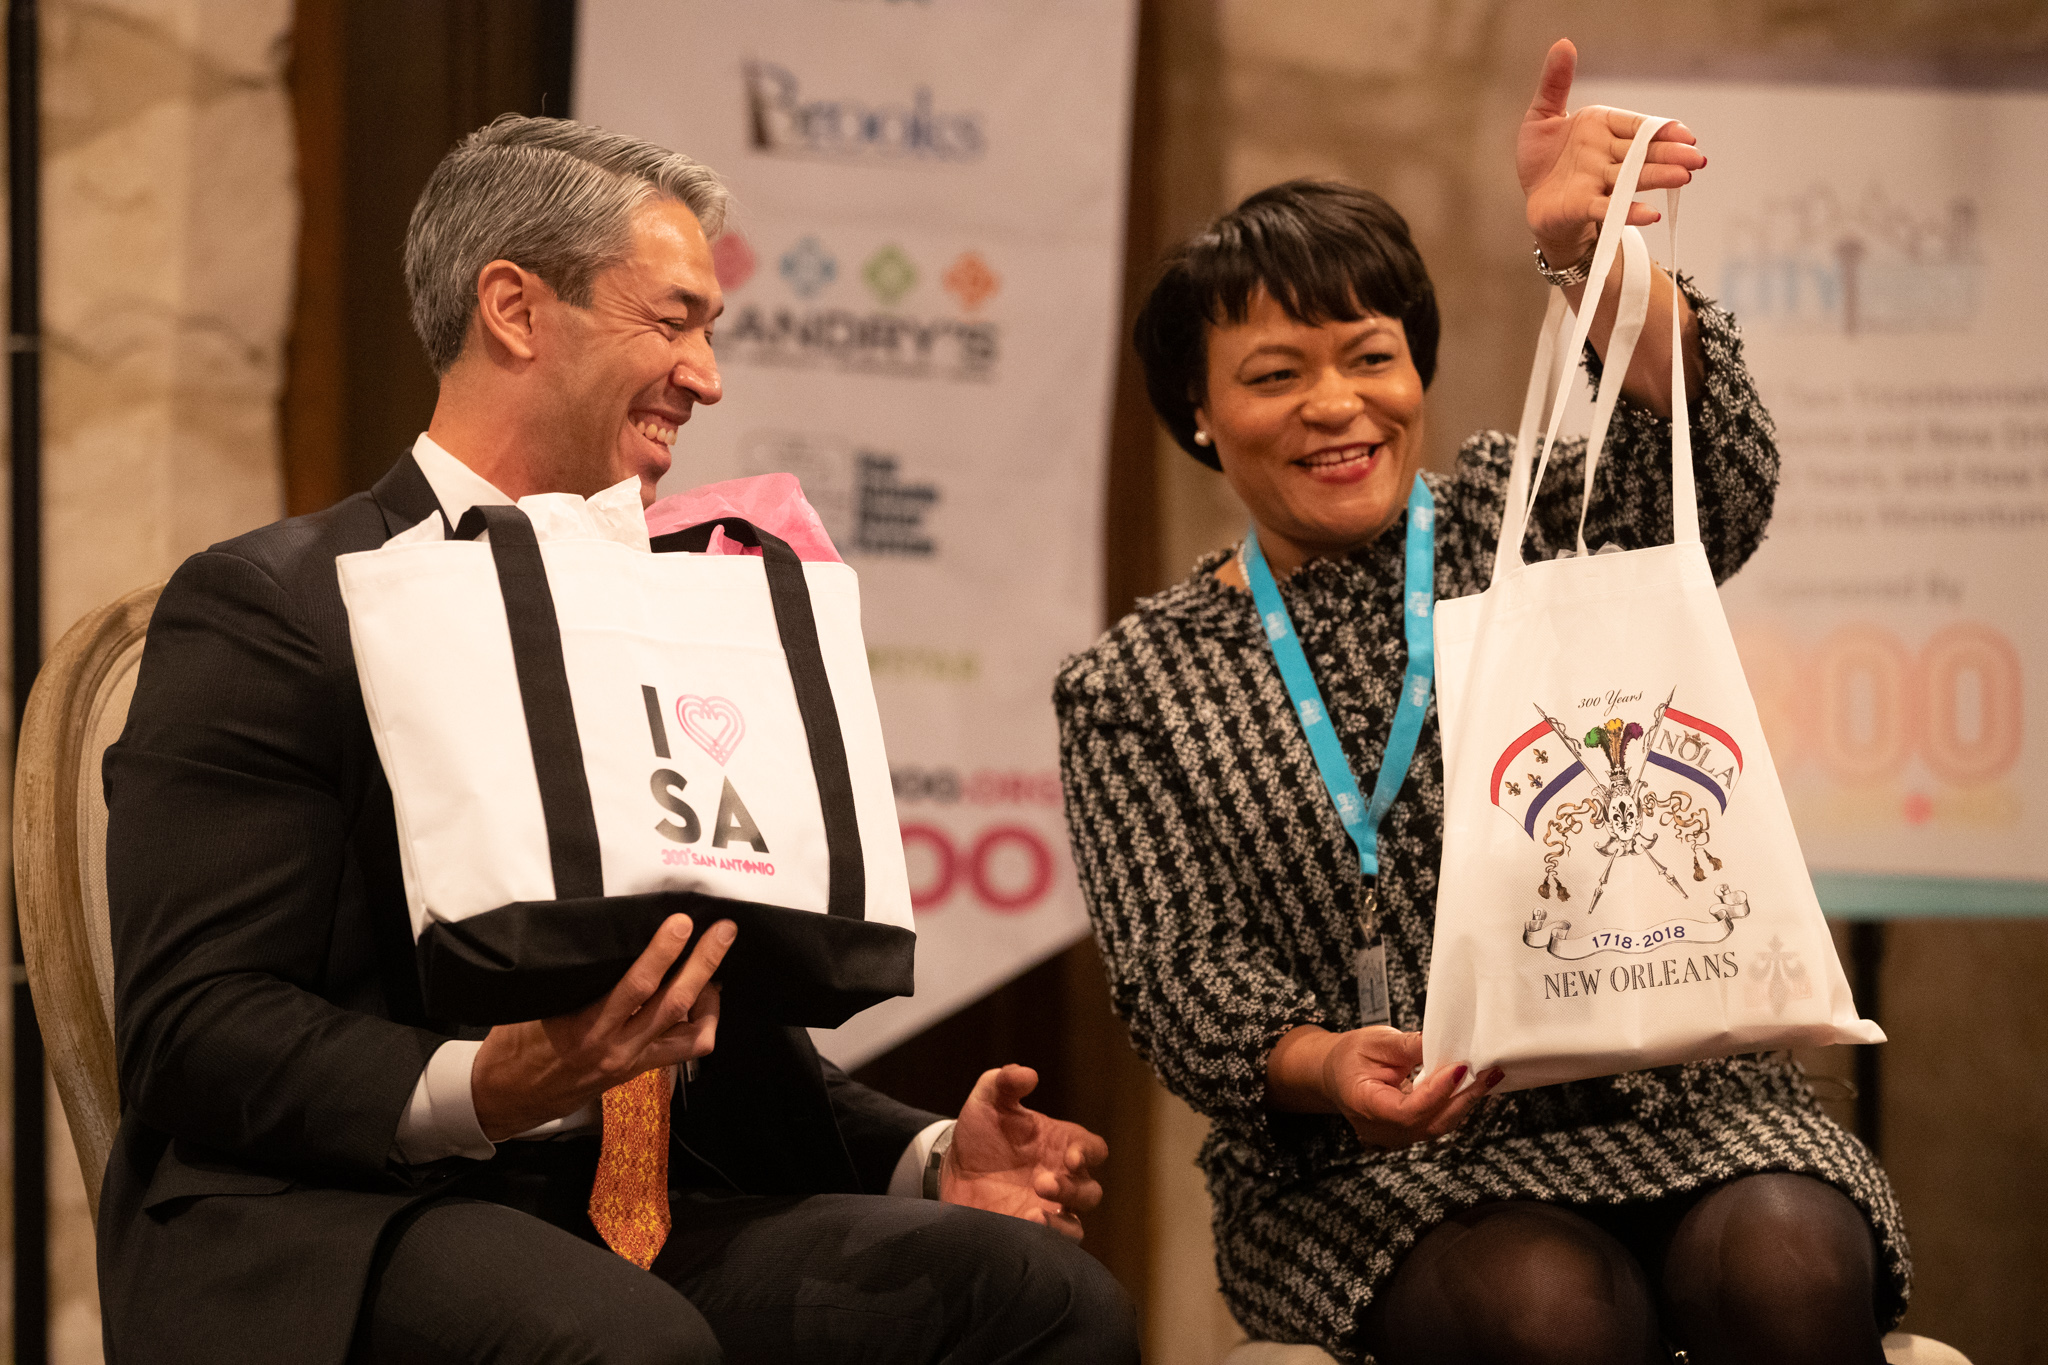 The Rivard Report: City Fest 2018 - New Orleans Mayor LaToya Cantrell shows off her gift to San Antonio Mayor Ron Nirenberg before their gift exchange during City Fest 2018 at the Southwest School of Art. Photo by Michael Cirlos